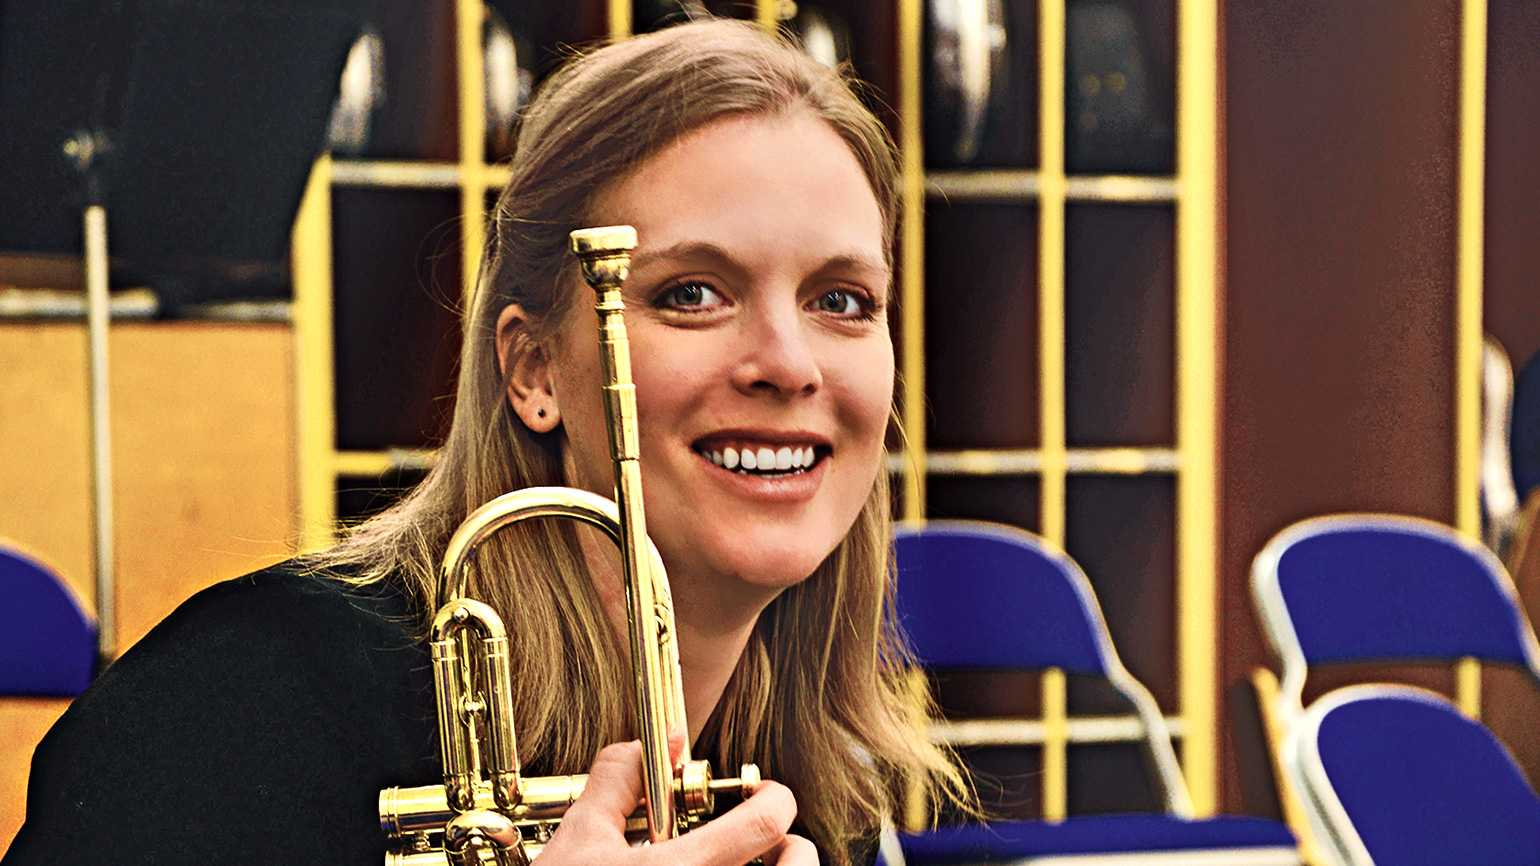 Erin, trumpet in hand, pauses during band rehearsal